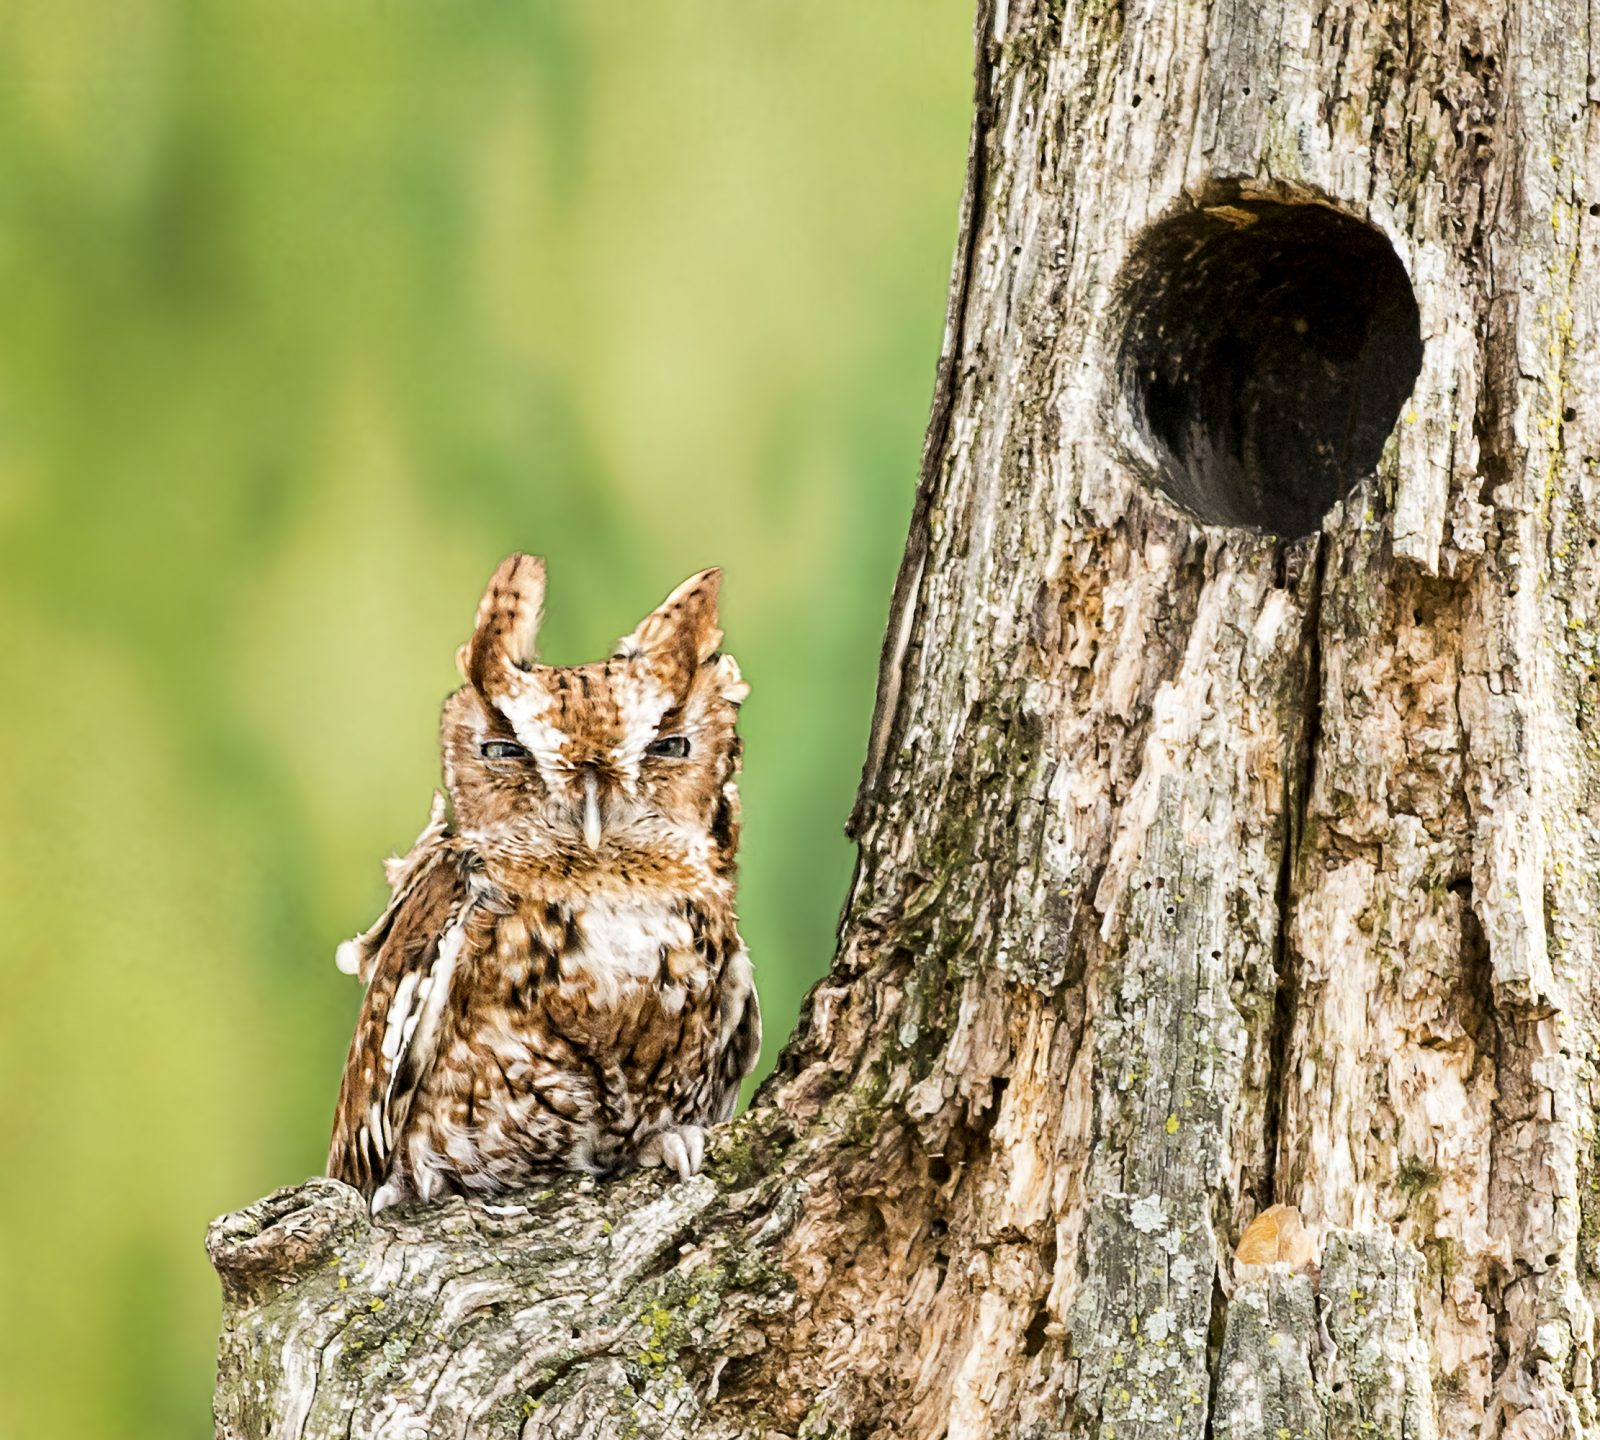 Eastern Screech Owl near cavity in tree